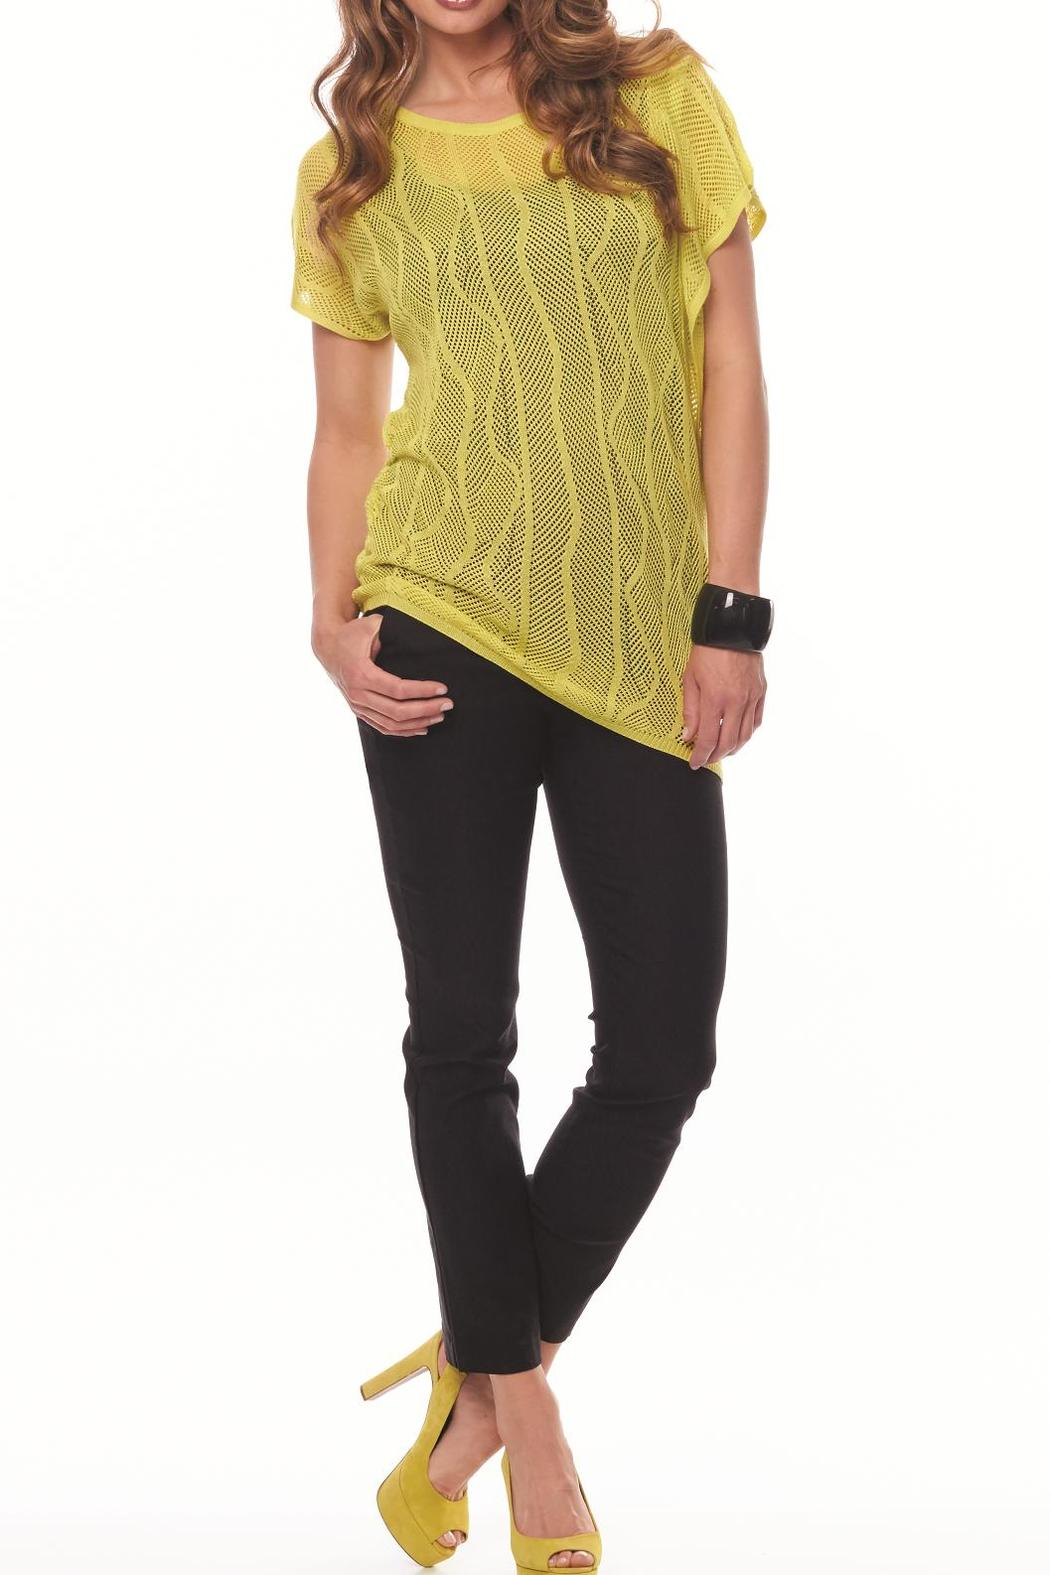 Inspired Style/Spanner Citron Knit Top - Main Image